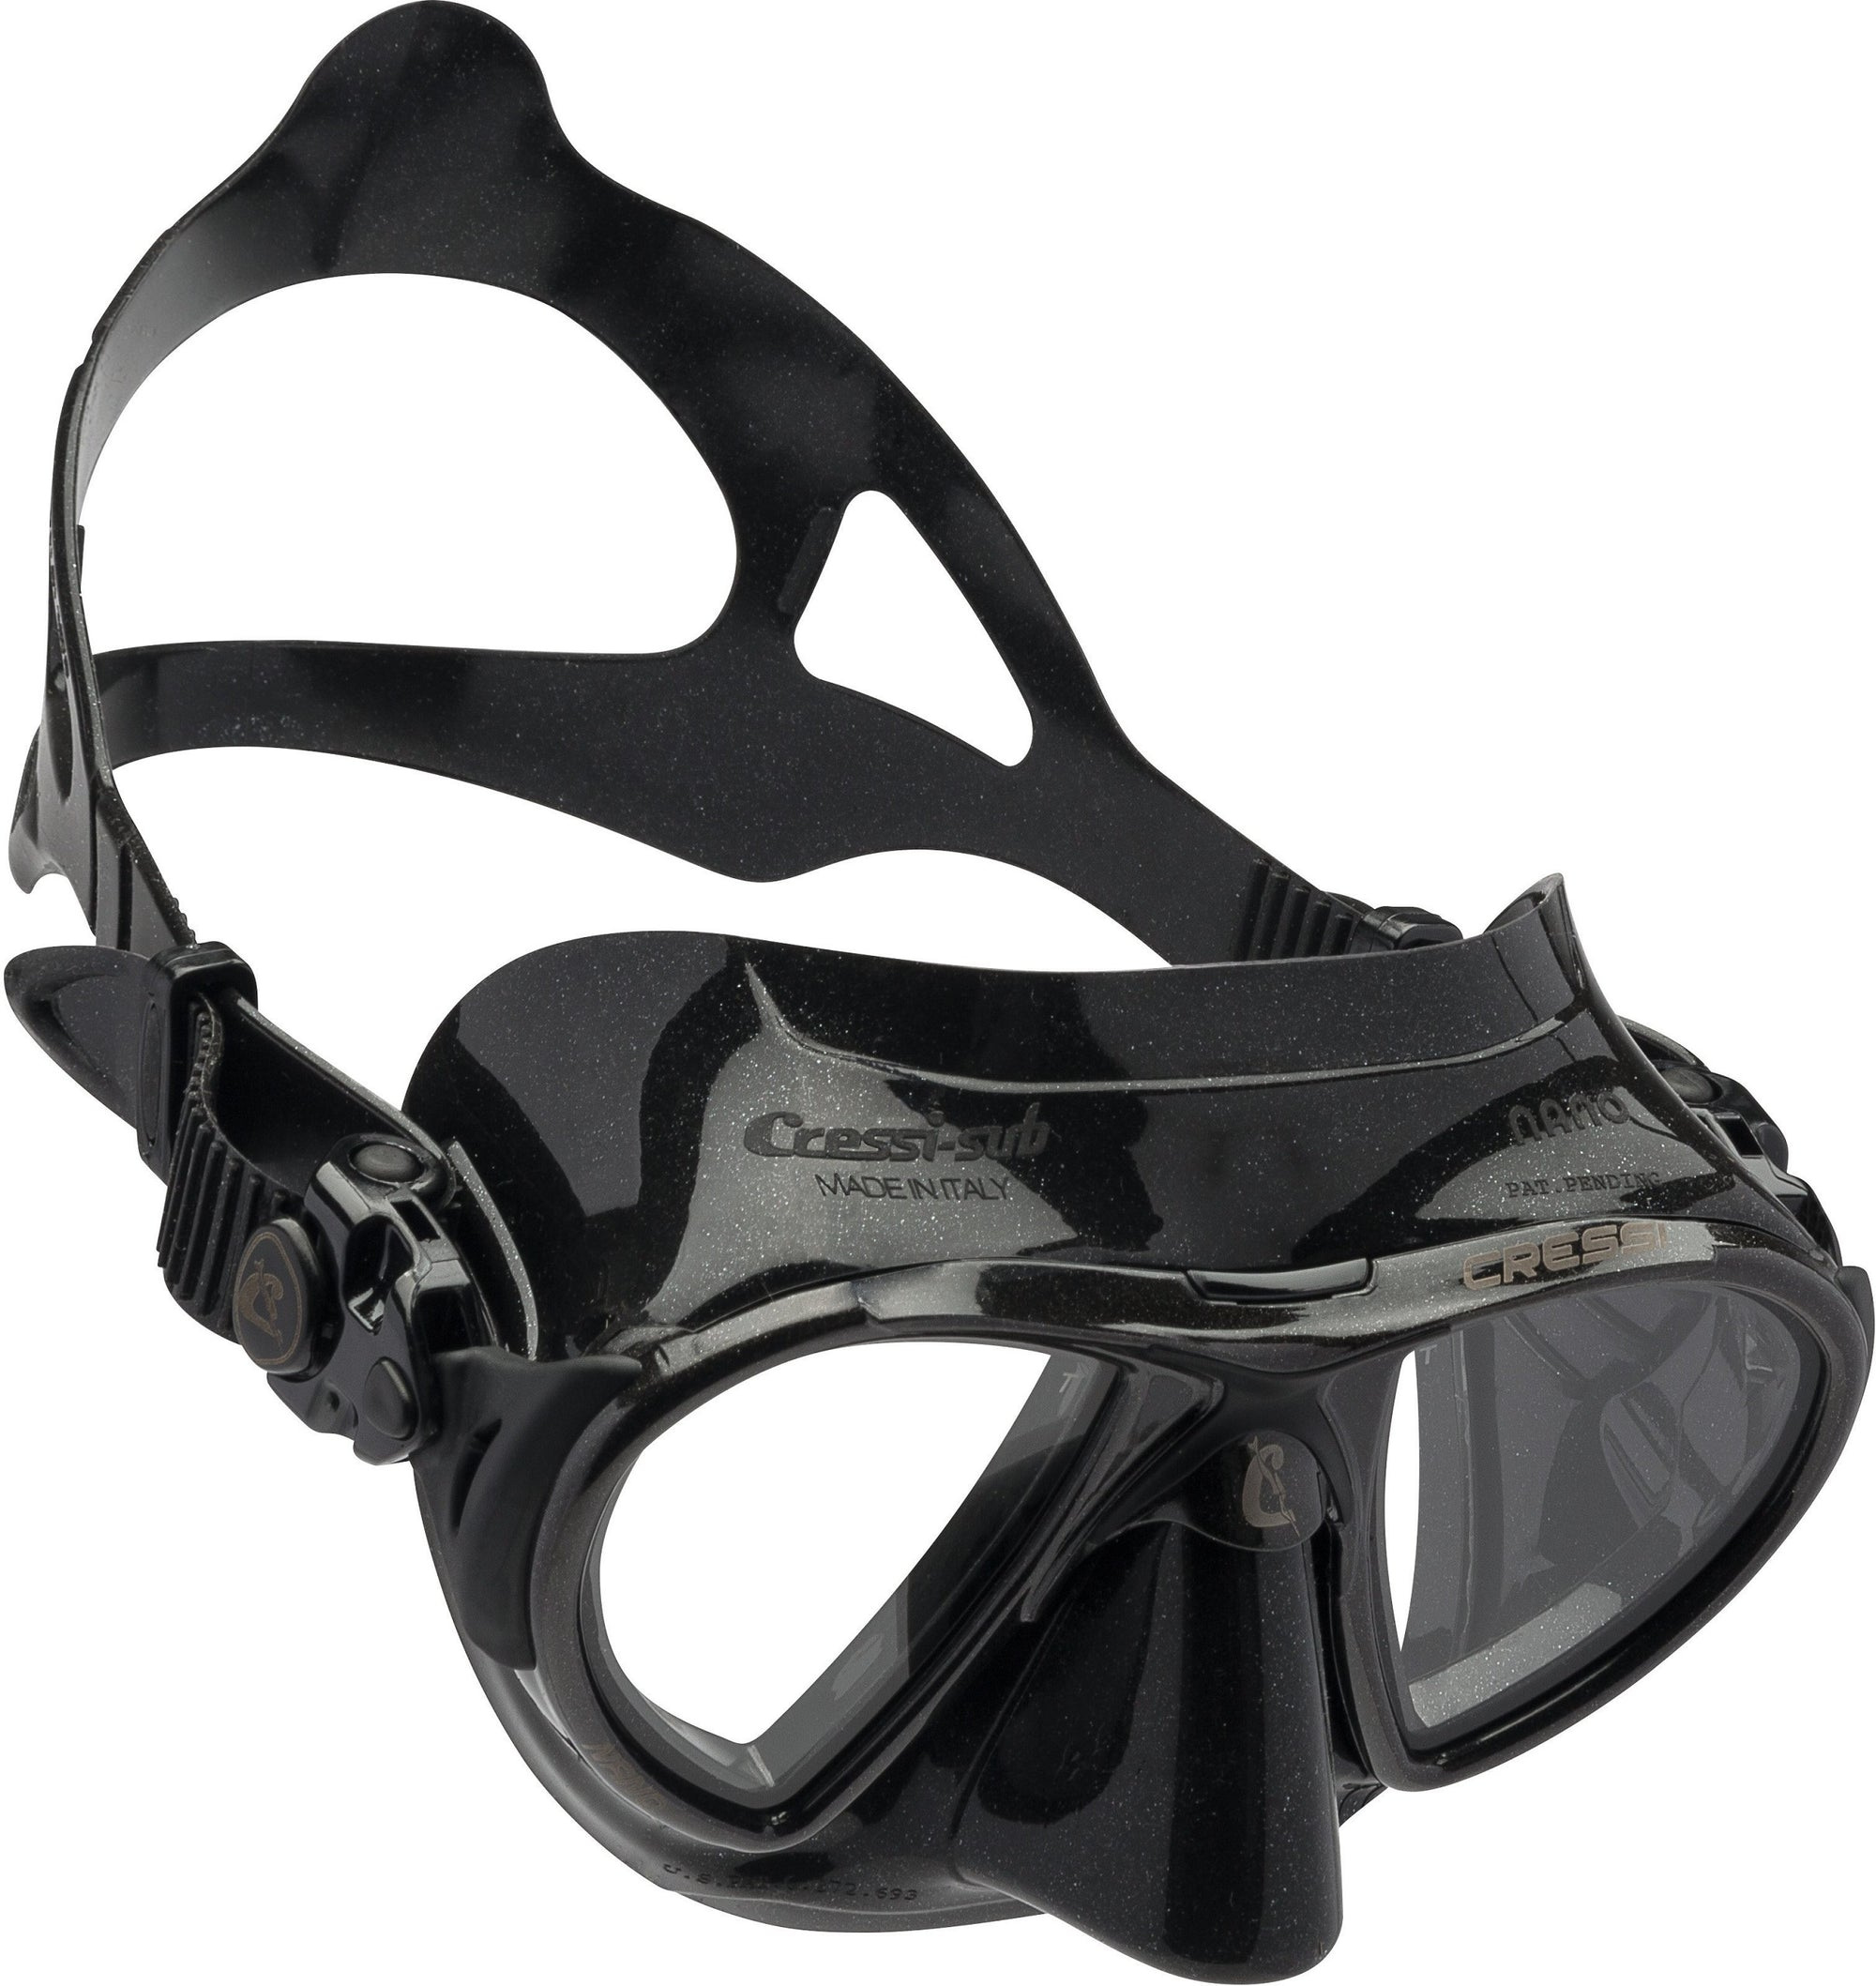 Cressi Nano Black Frame Dive Mask